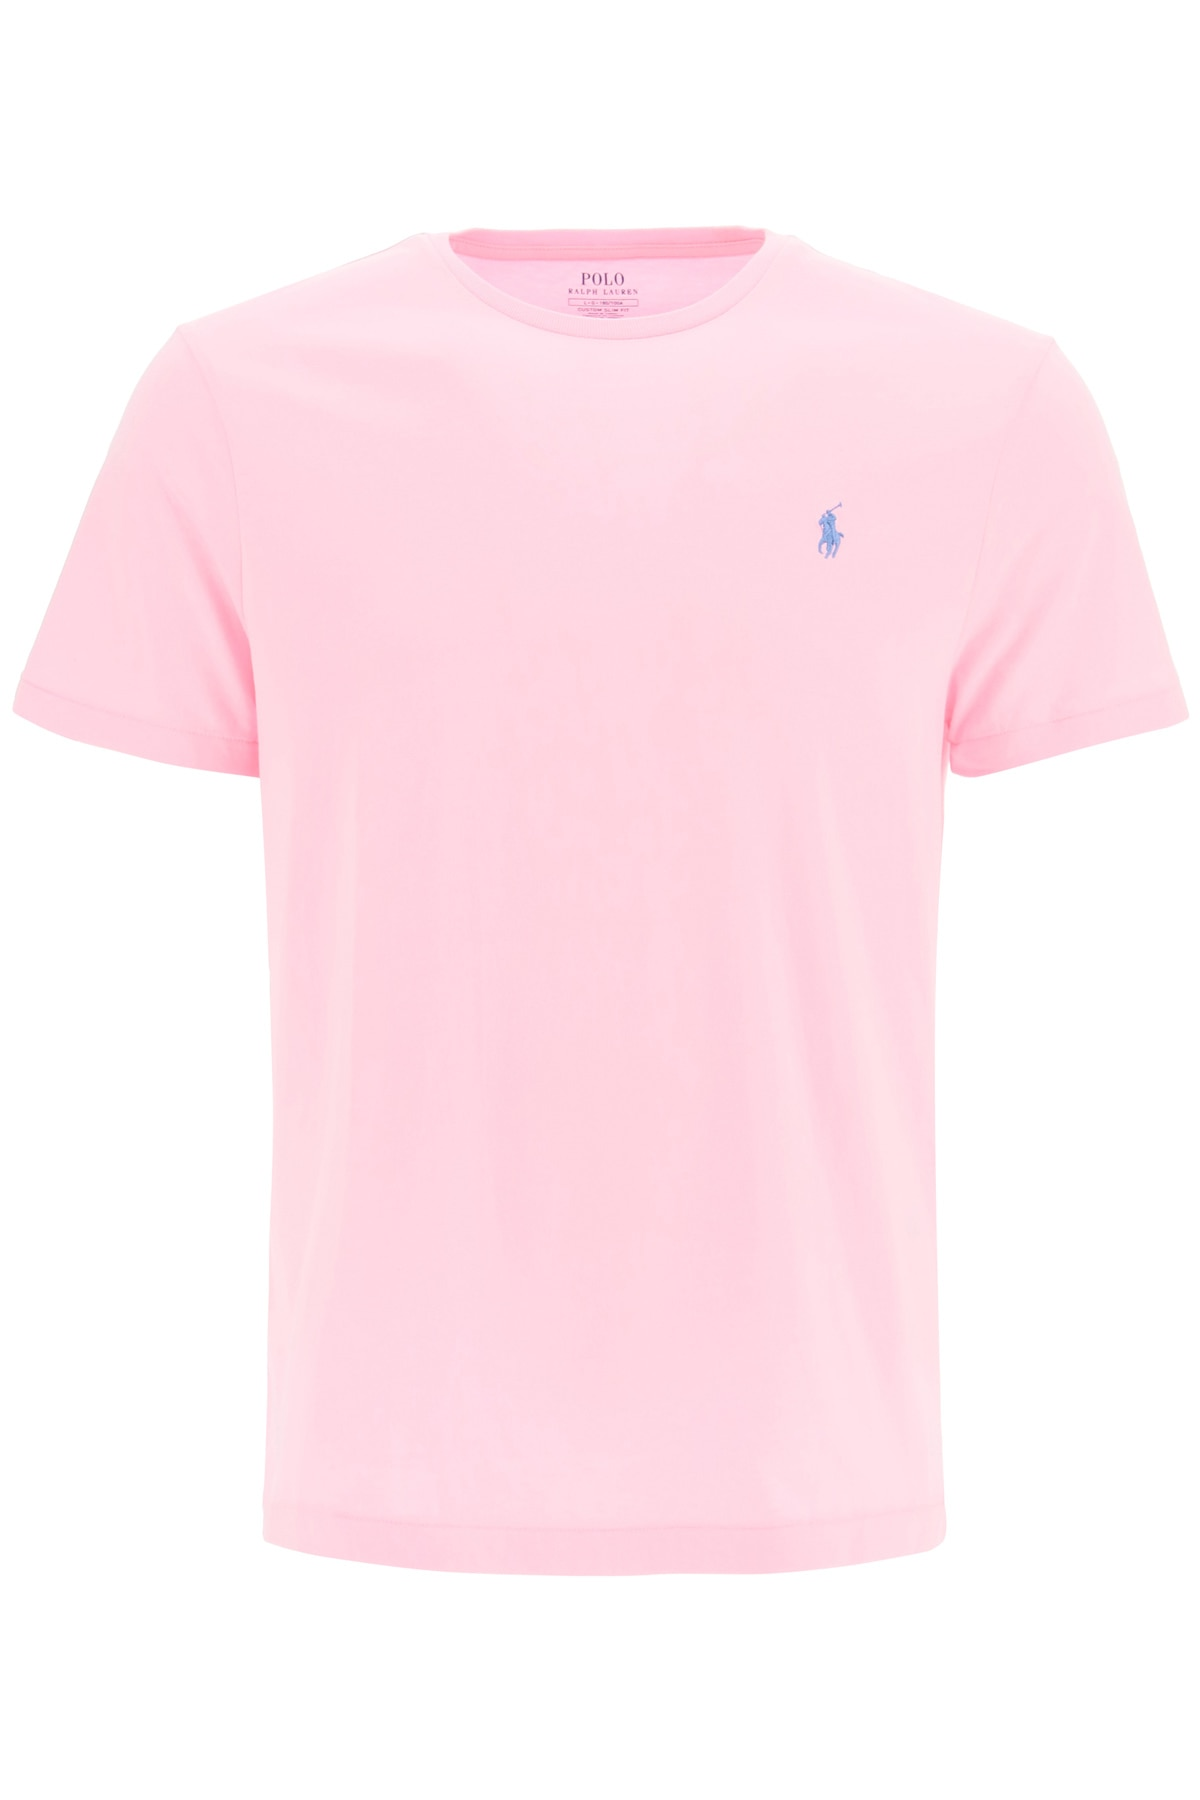 POLO RALPH LAUREN T-SHIRT WITH LOGO EMBROIDERY M Pink, Light blue Cotton